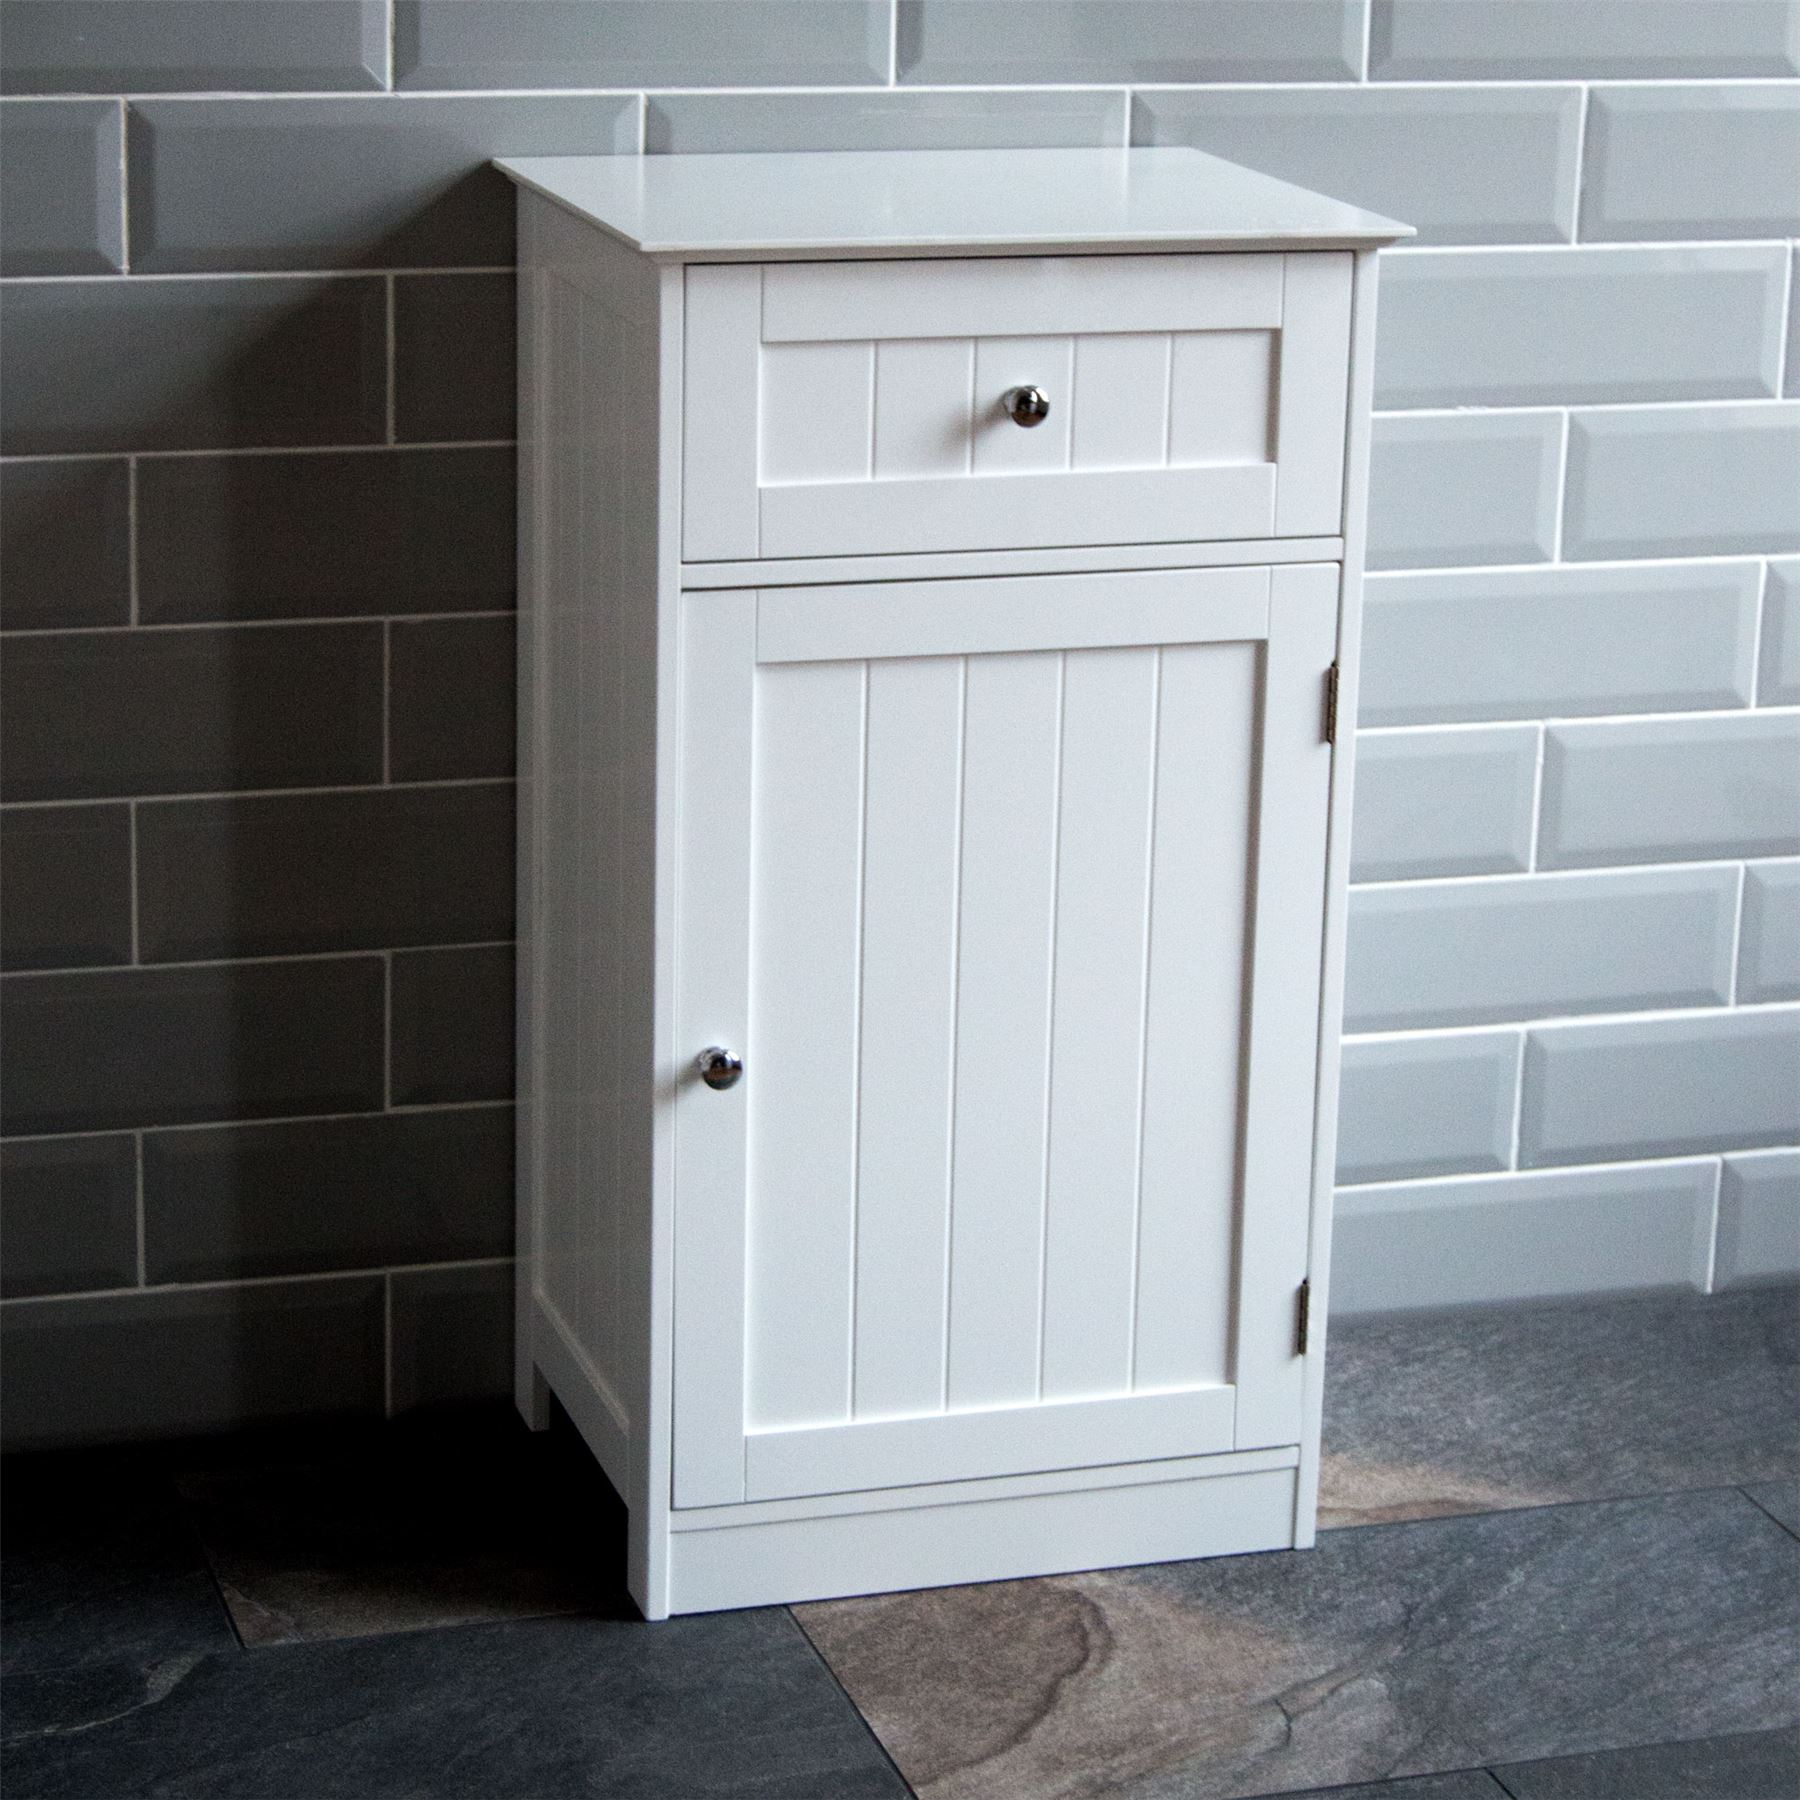 Storage Units Bathroom: Bathroom Cabinet 1 Door 1 Drawer Freestanding Storage Unit